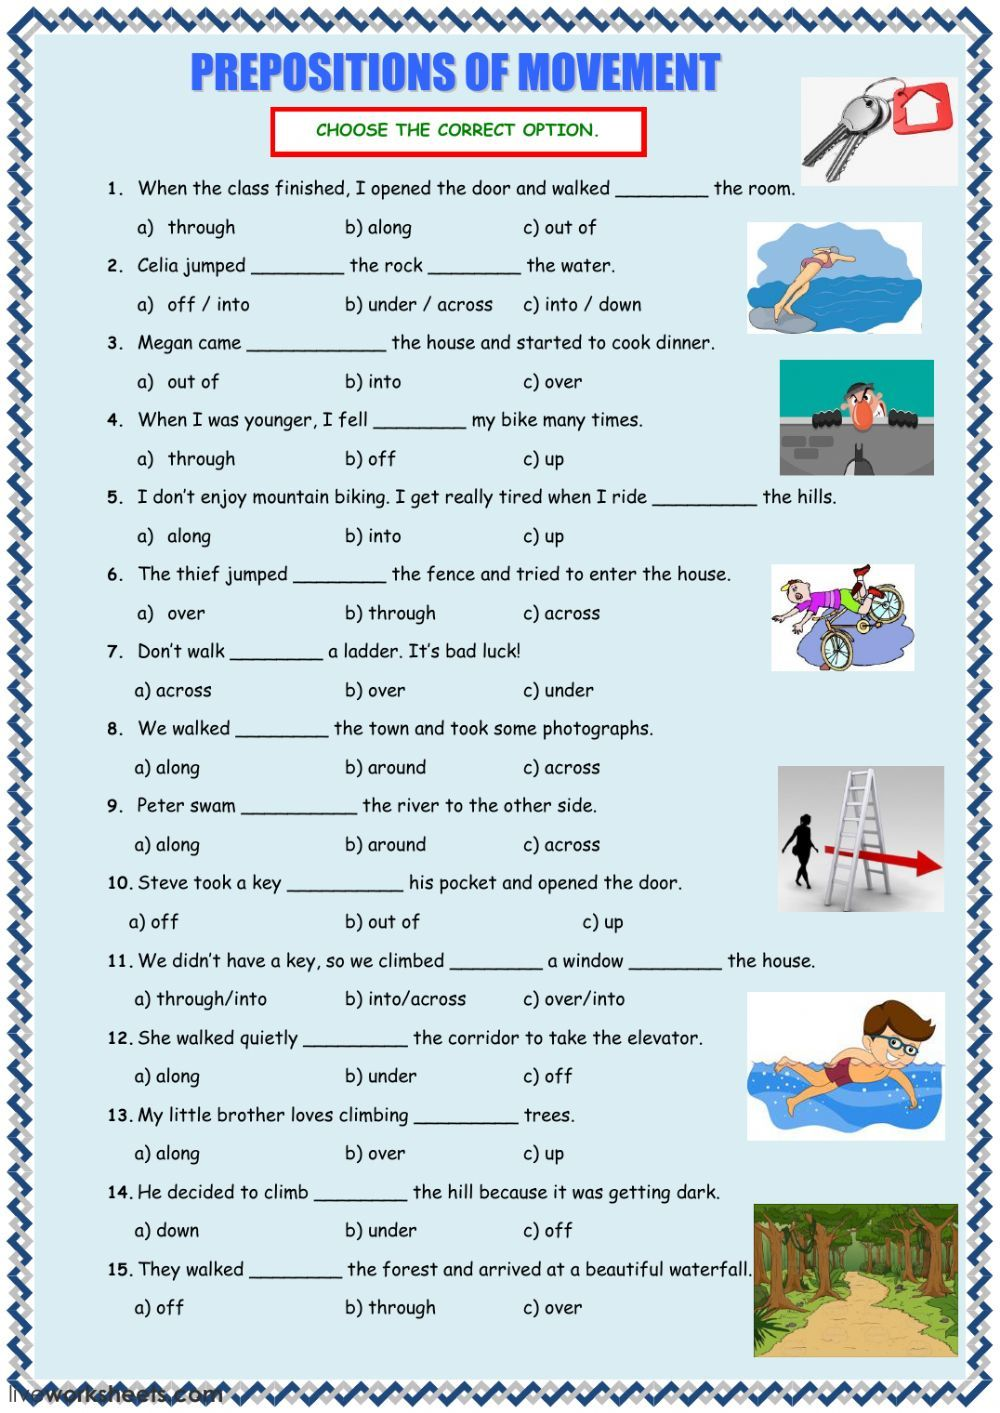 Prepositions of movement interactive and downloadable worksheet. You can do  the exercises online or downloa…   Preposition worksheets [ 1413 x 1000 Pixel ]